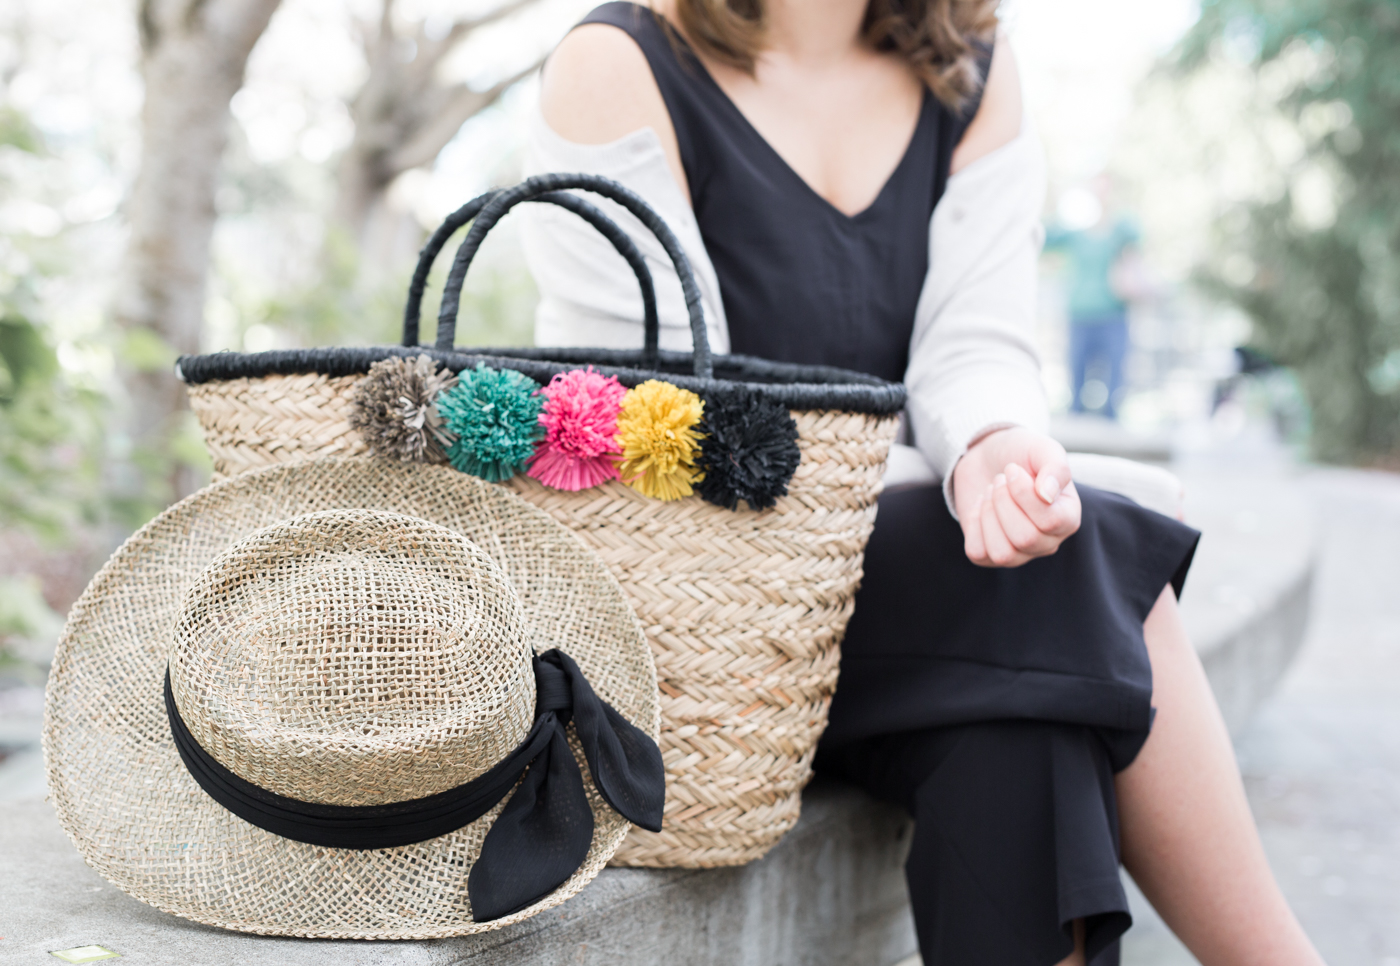 San Diego Hat Company Pom Seagrass Tote & Hat   The Chic Diary